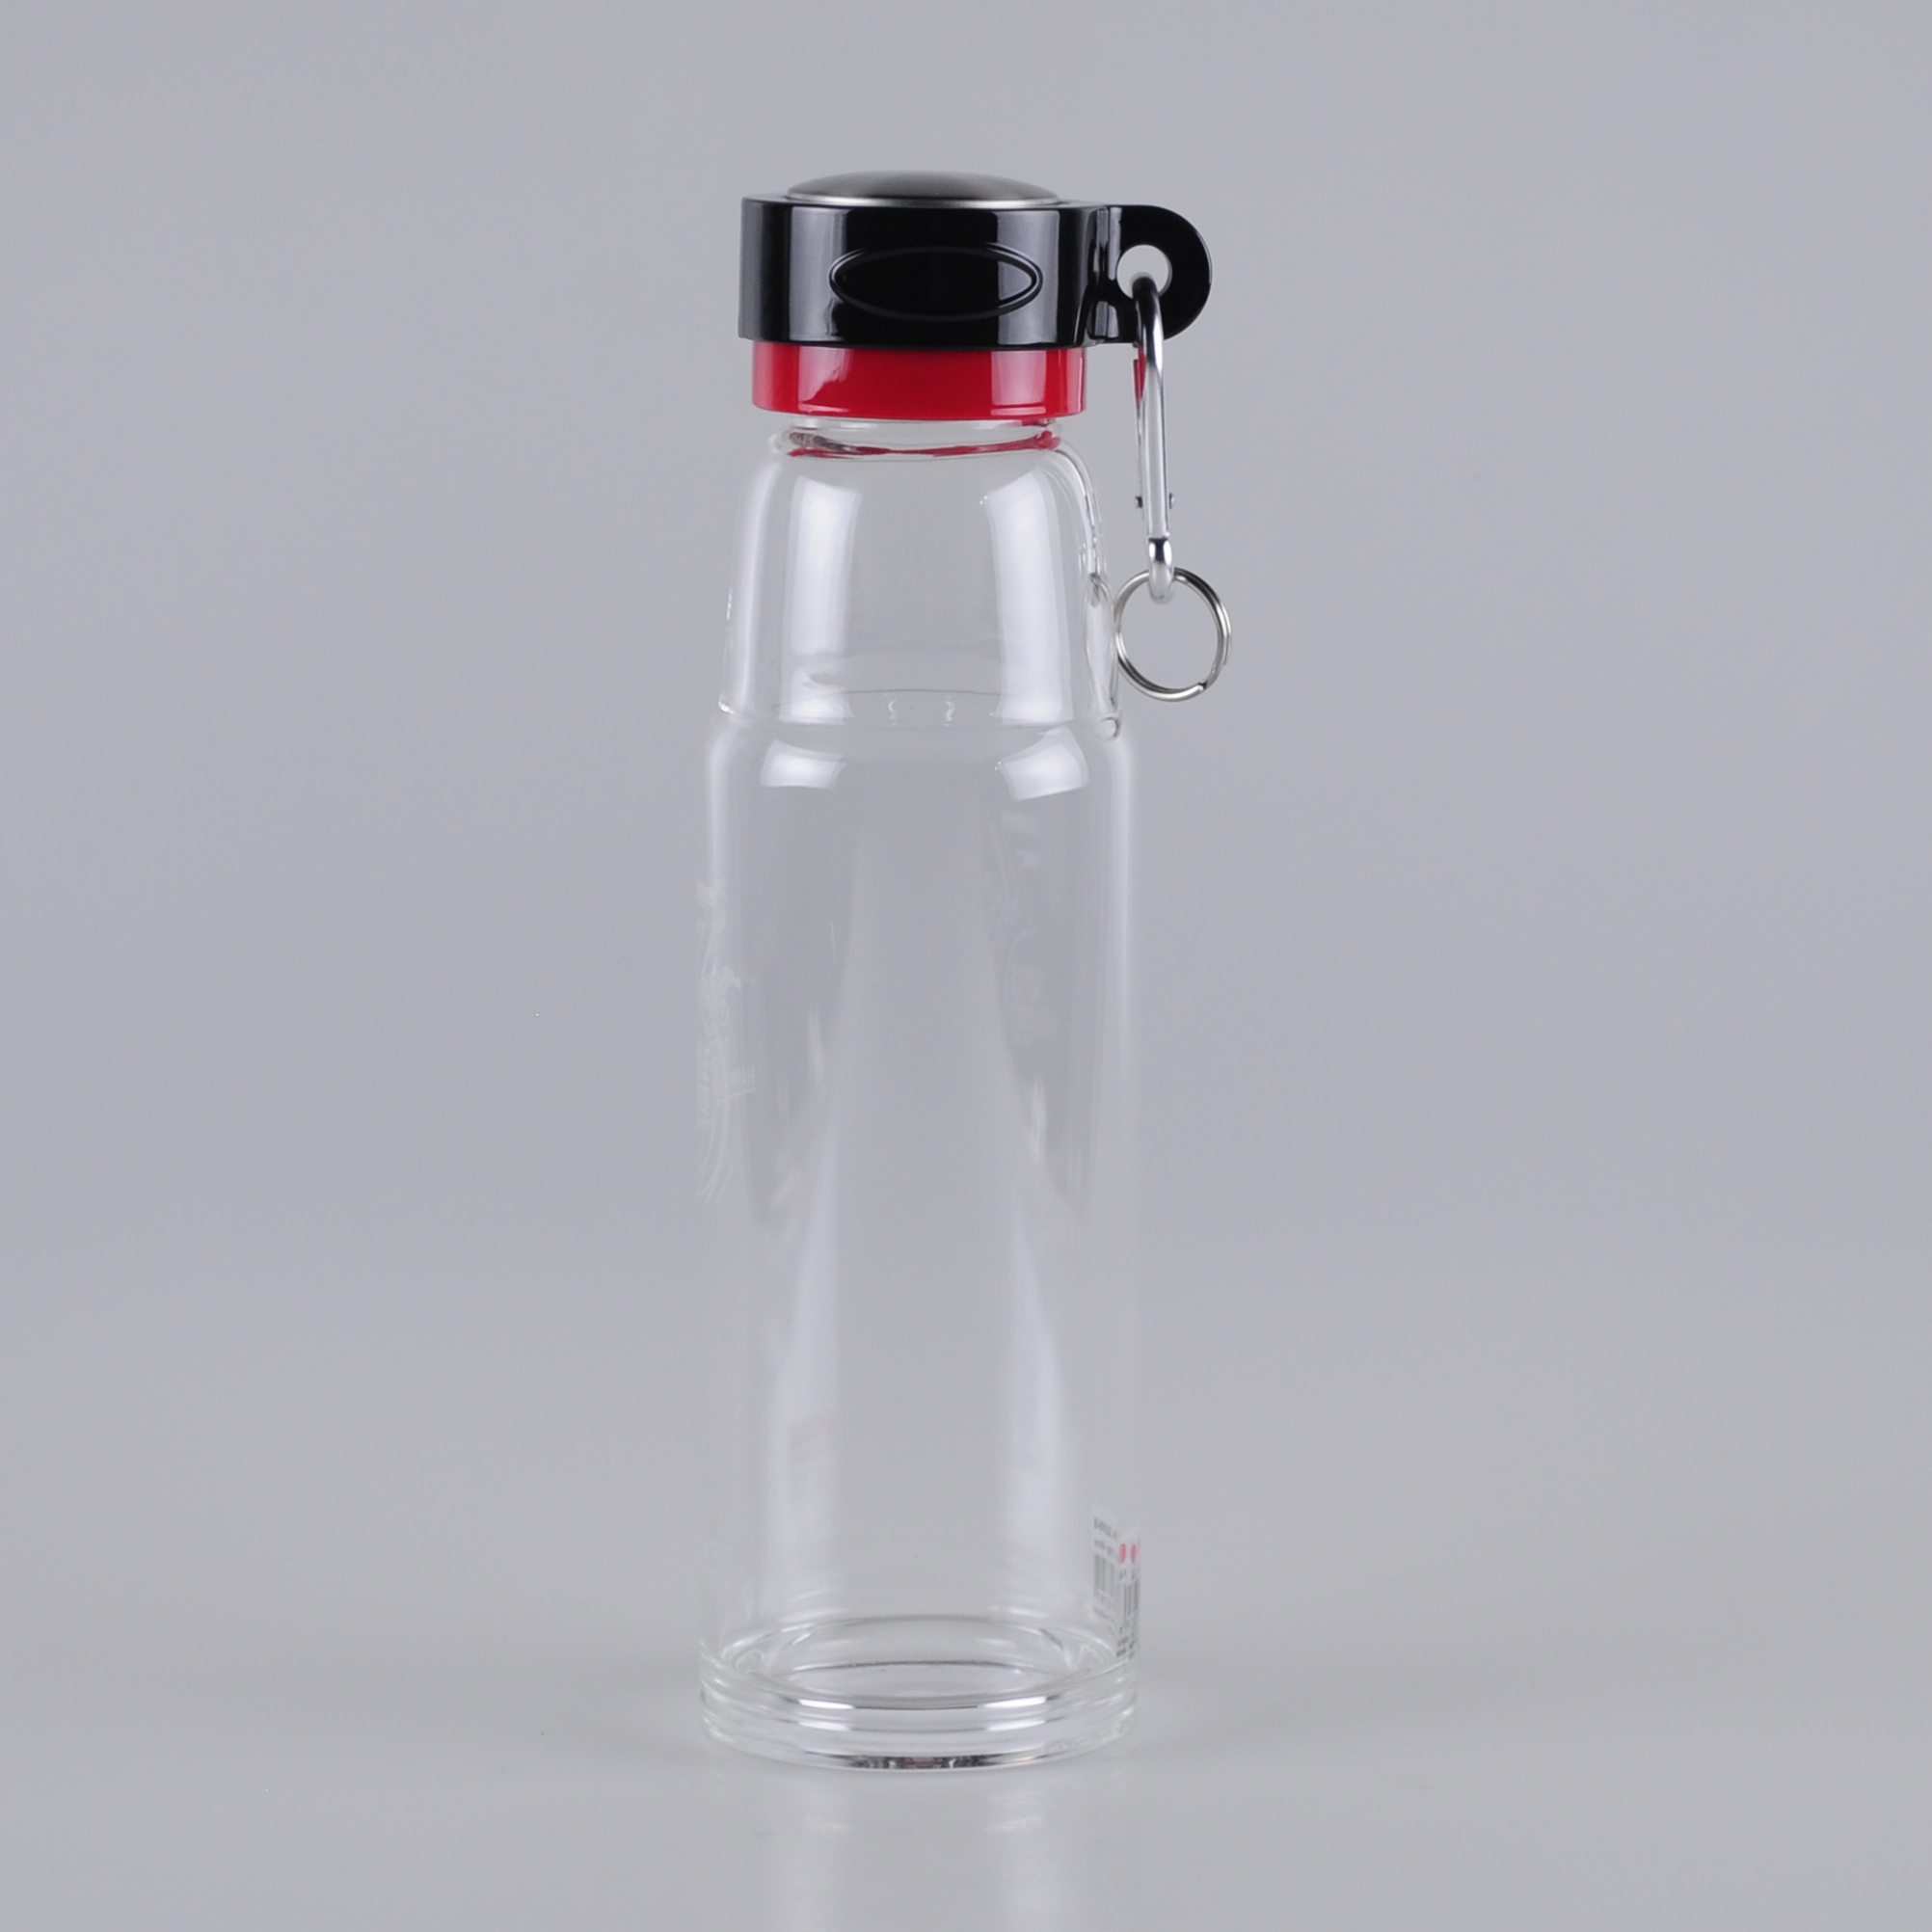 480ml-easy-carrying-high-quality-glass-bottle (1)